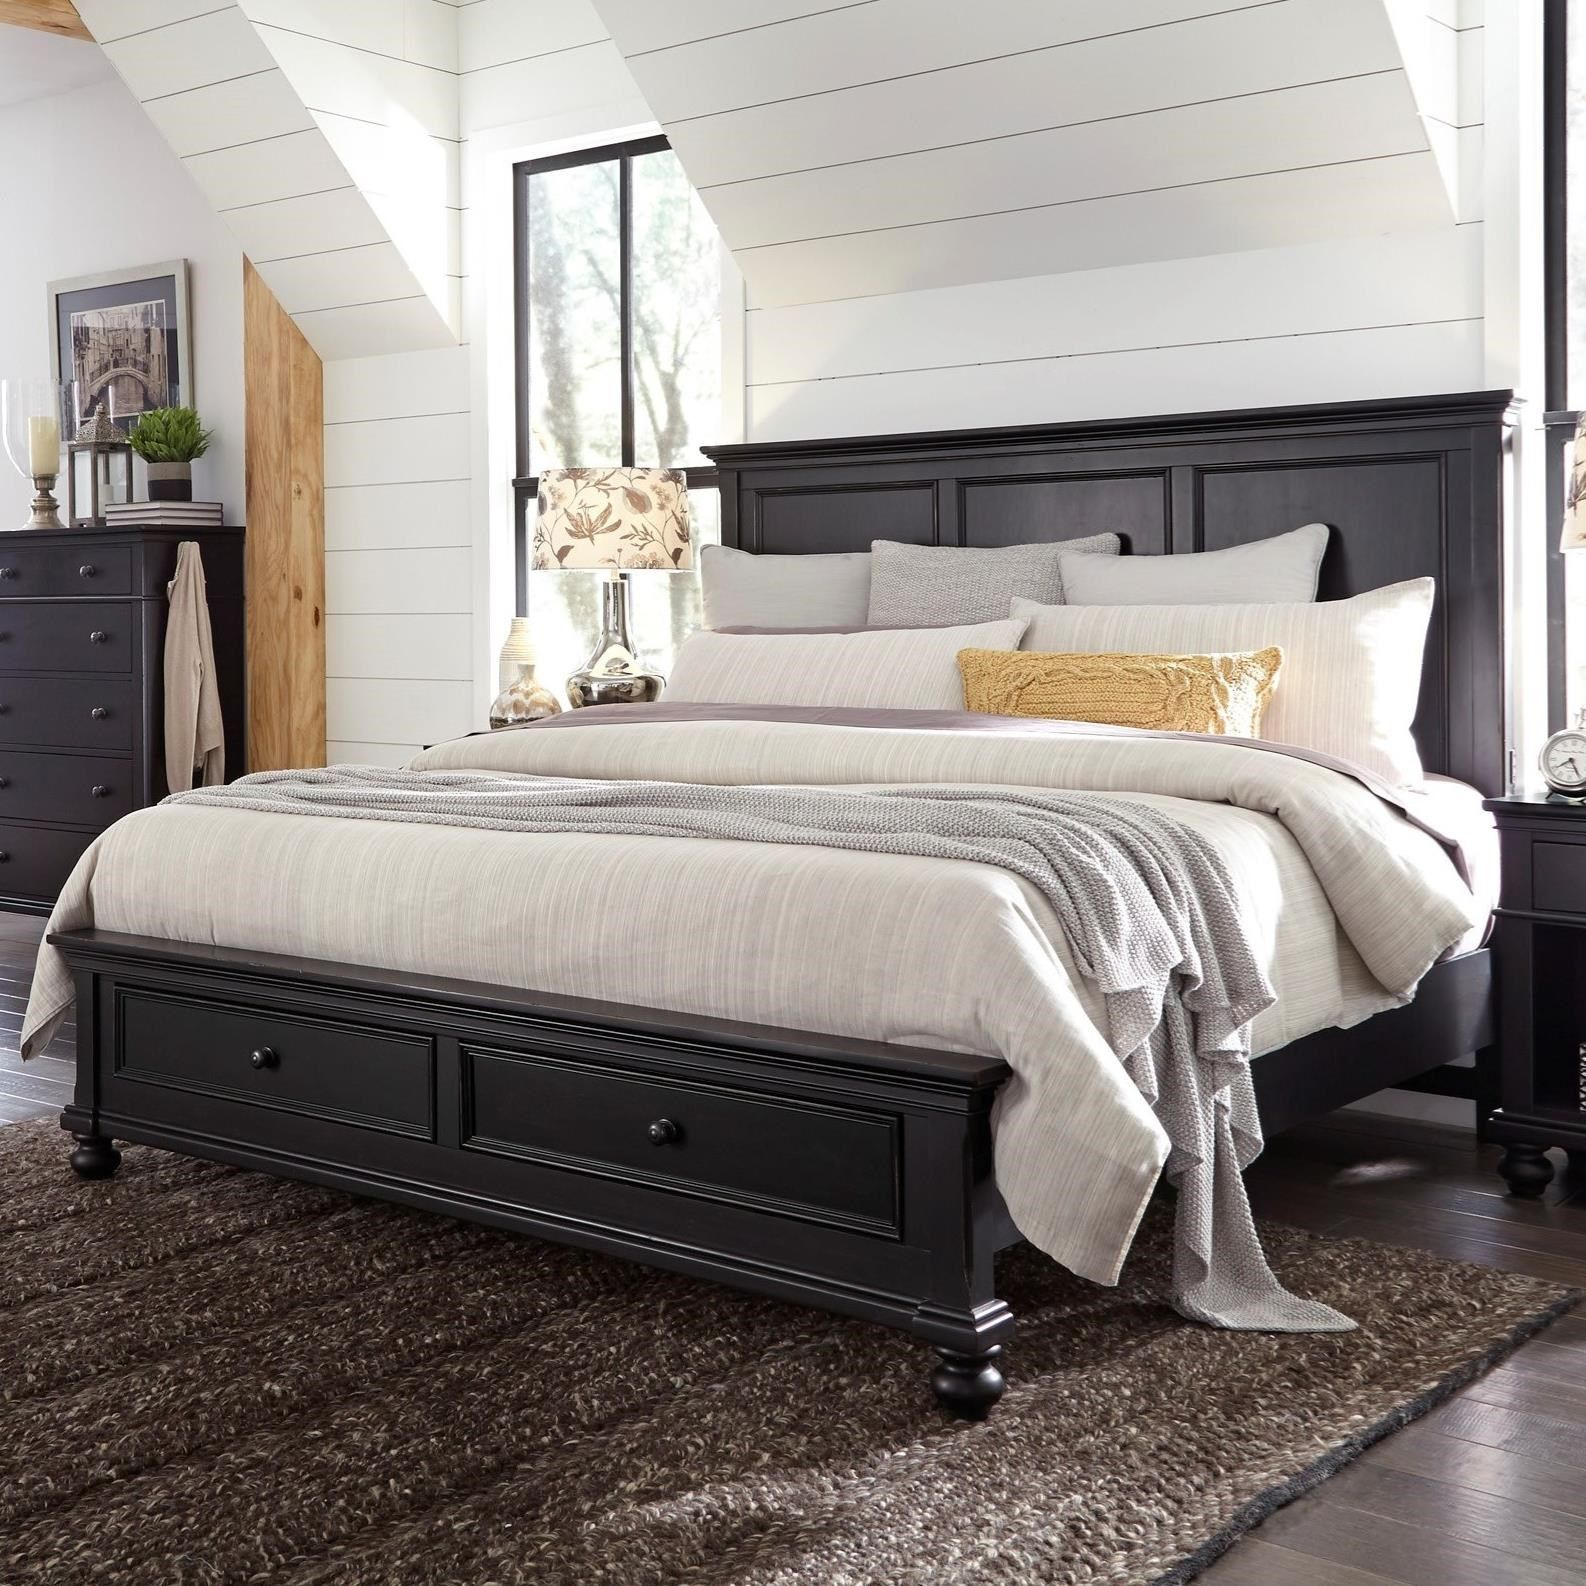 oxford oakford king panel storage bed by highland court at morris